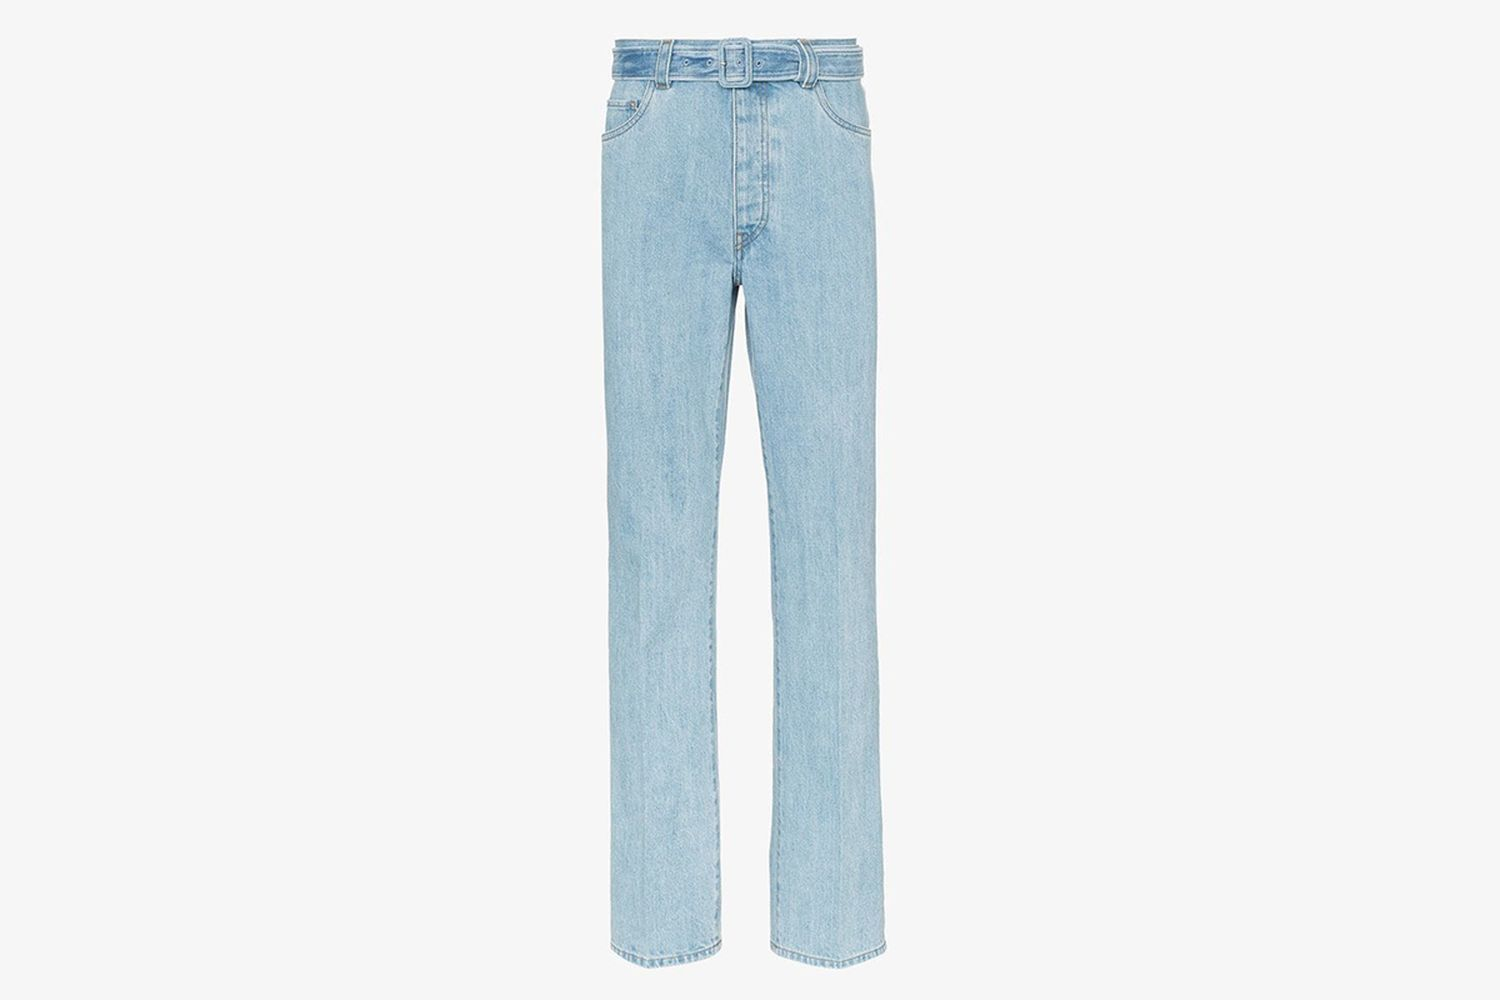 Vintage Style Bootcut Jeans